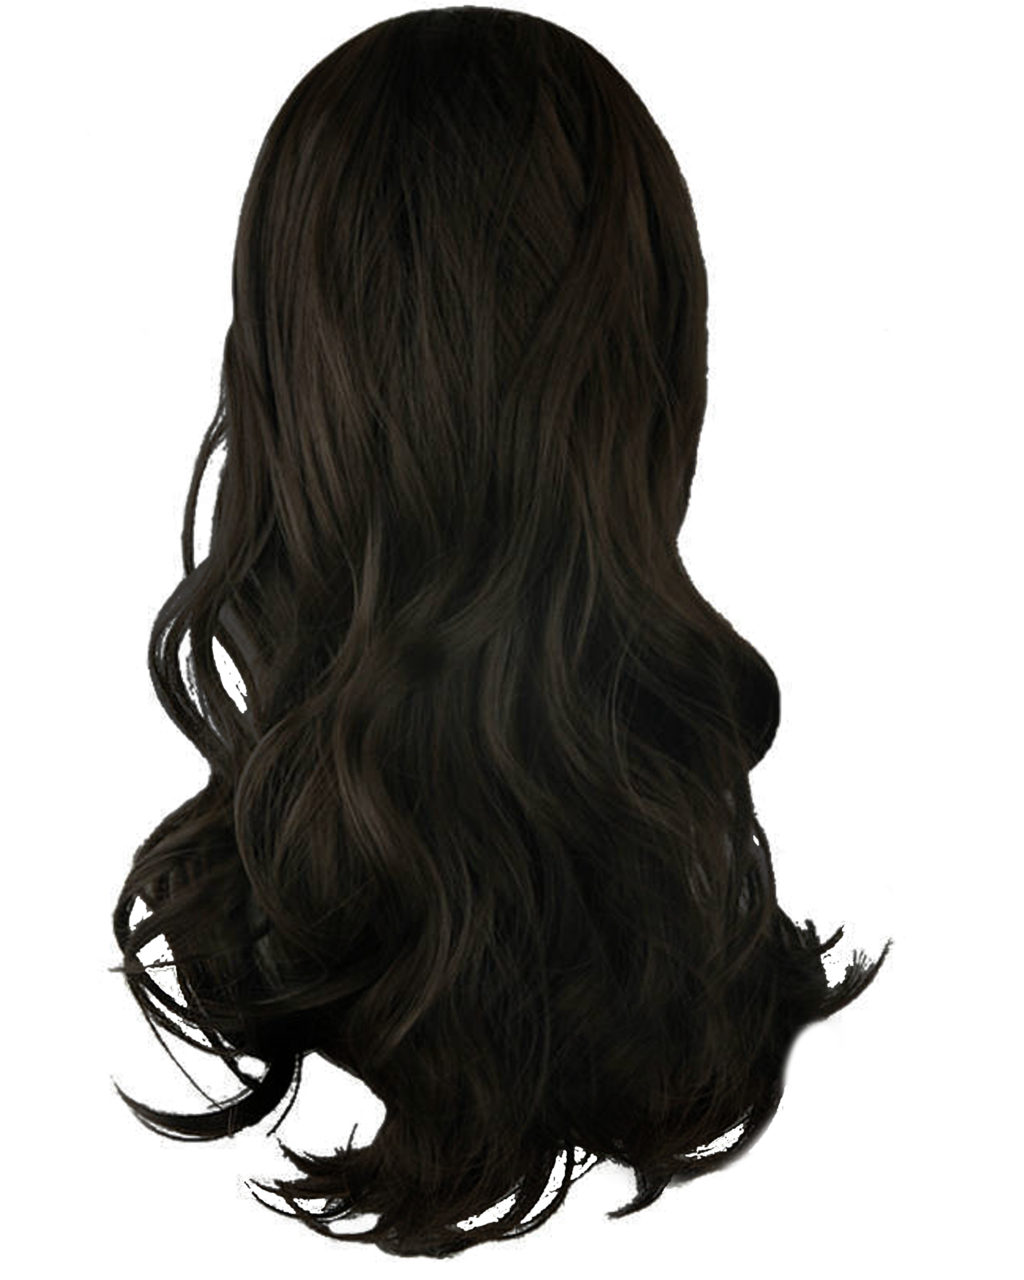 Women Hair Png Image Purepng Free Transparent Cc0 Png Image Library